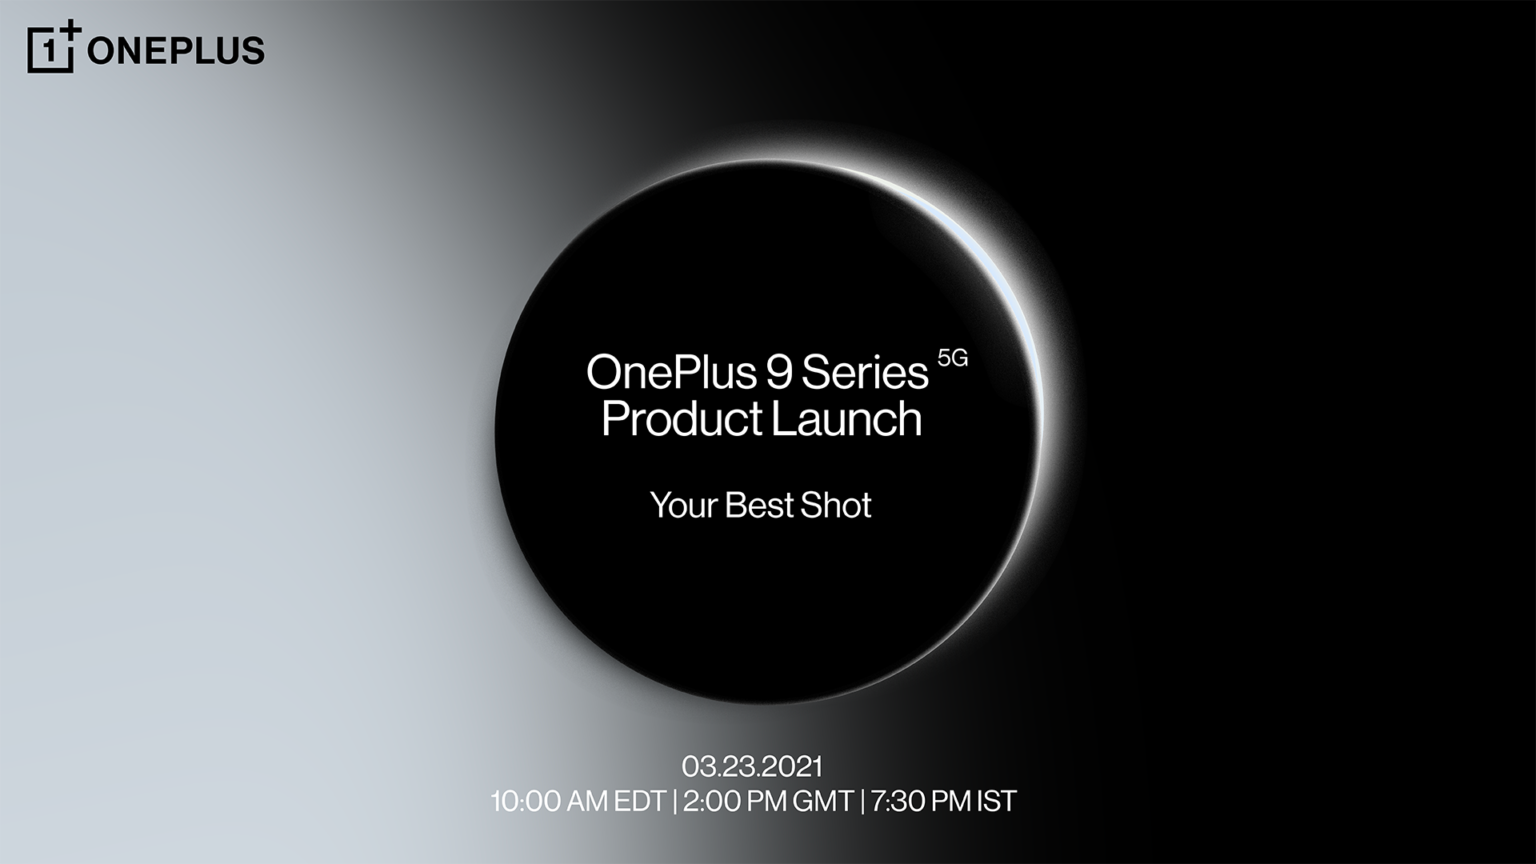 OnePlus 9 Launch Date and Hasselblad Partnership Confirmed by OnePlus